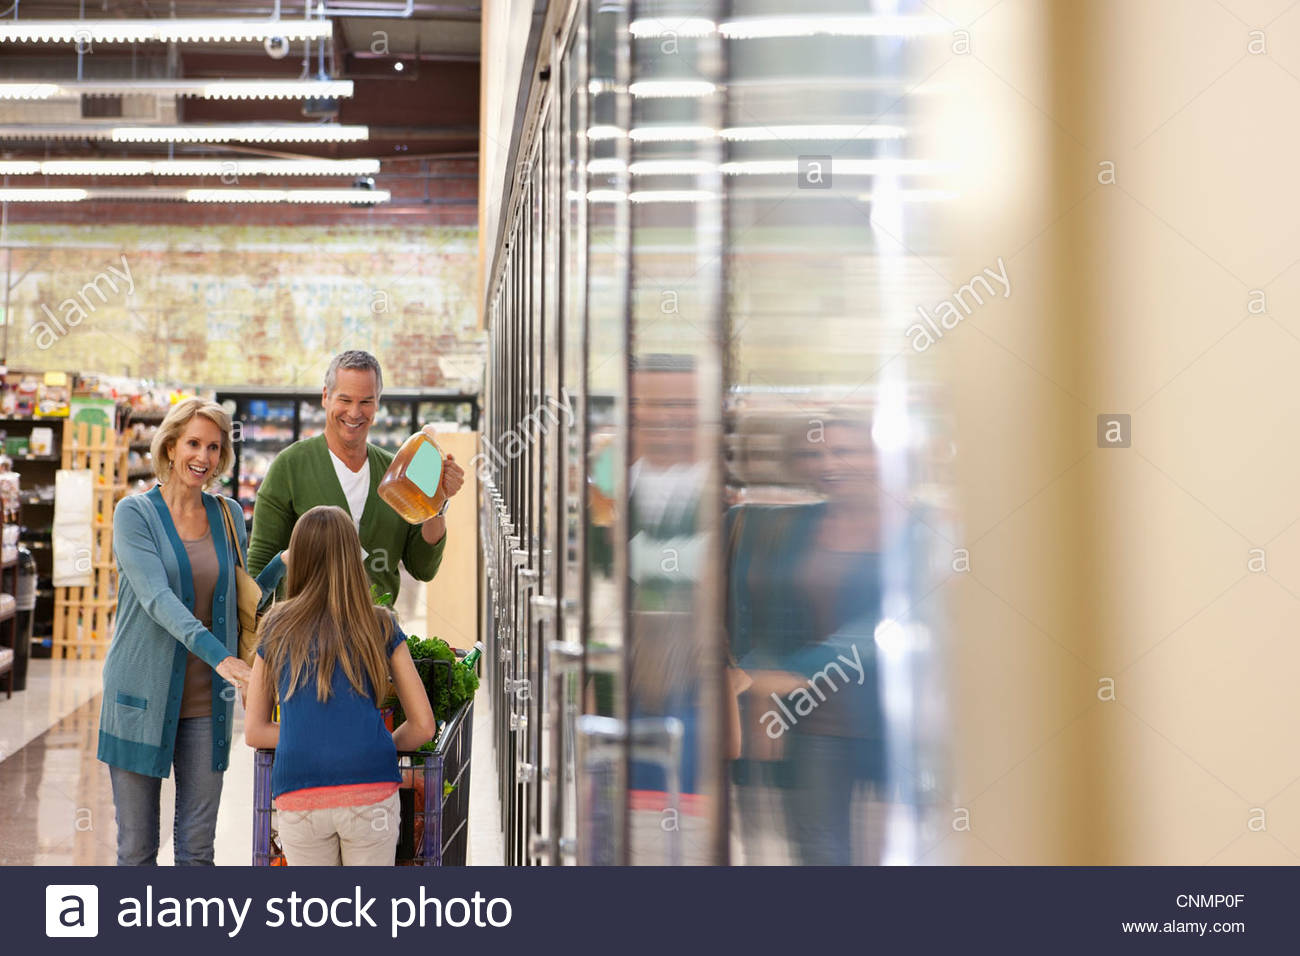 Family shopping in supermarket - Stock Image